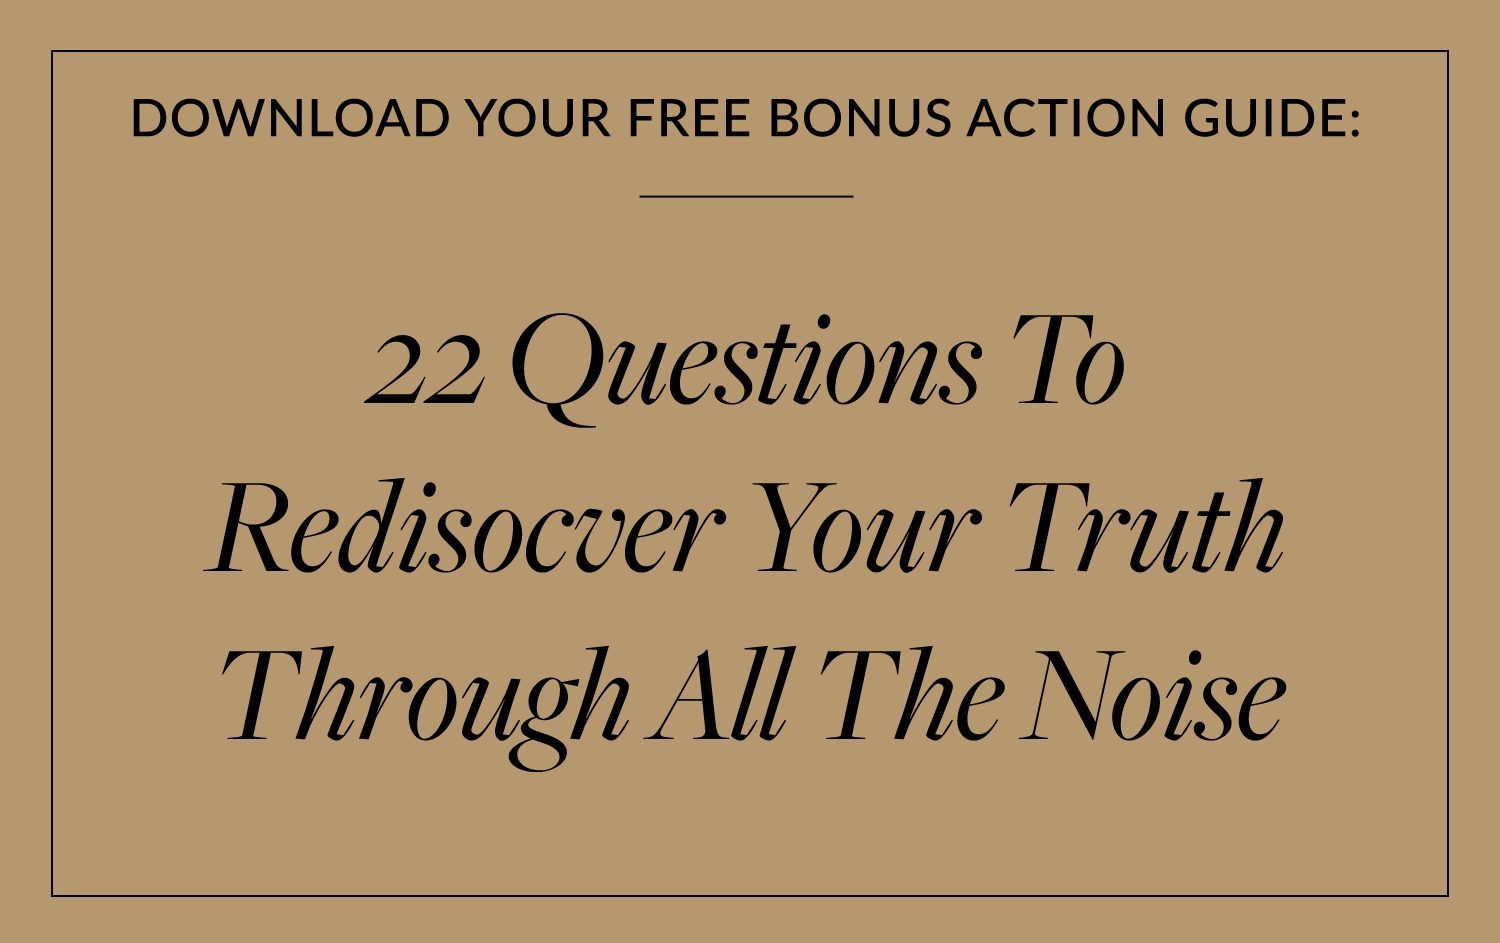 22 Questions To Rediscover Your Truth Through All The Noise